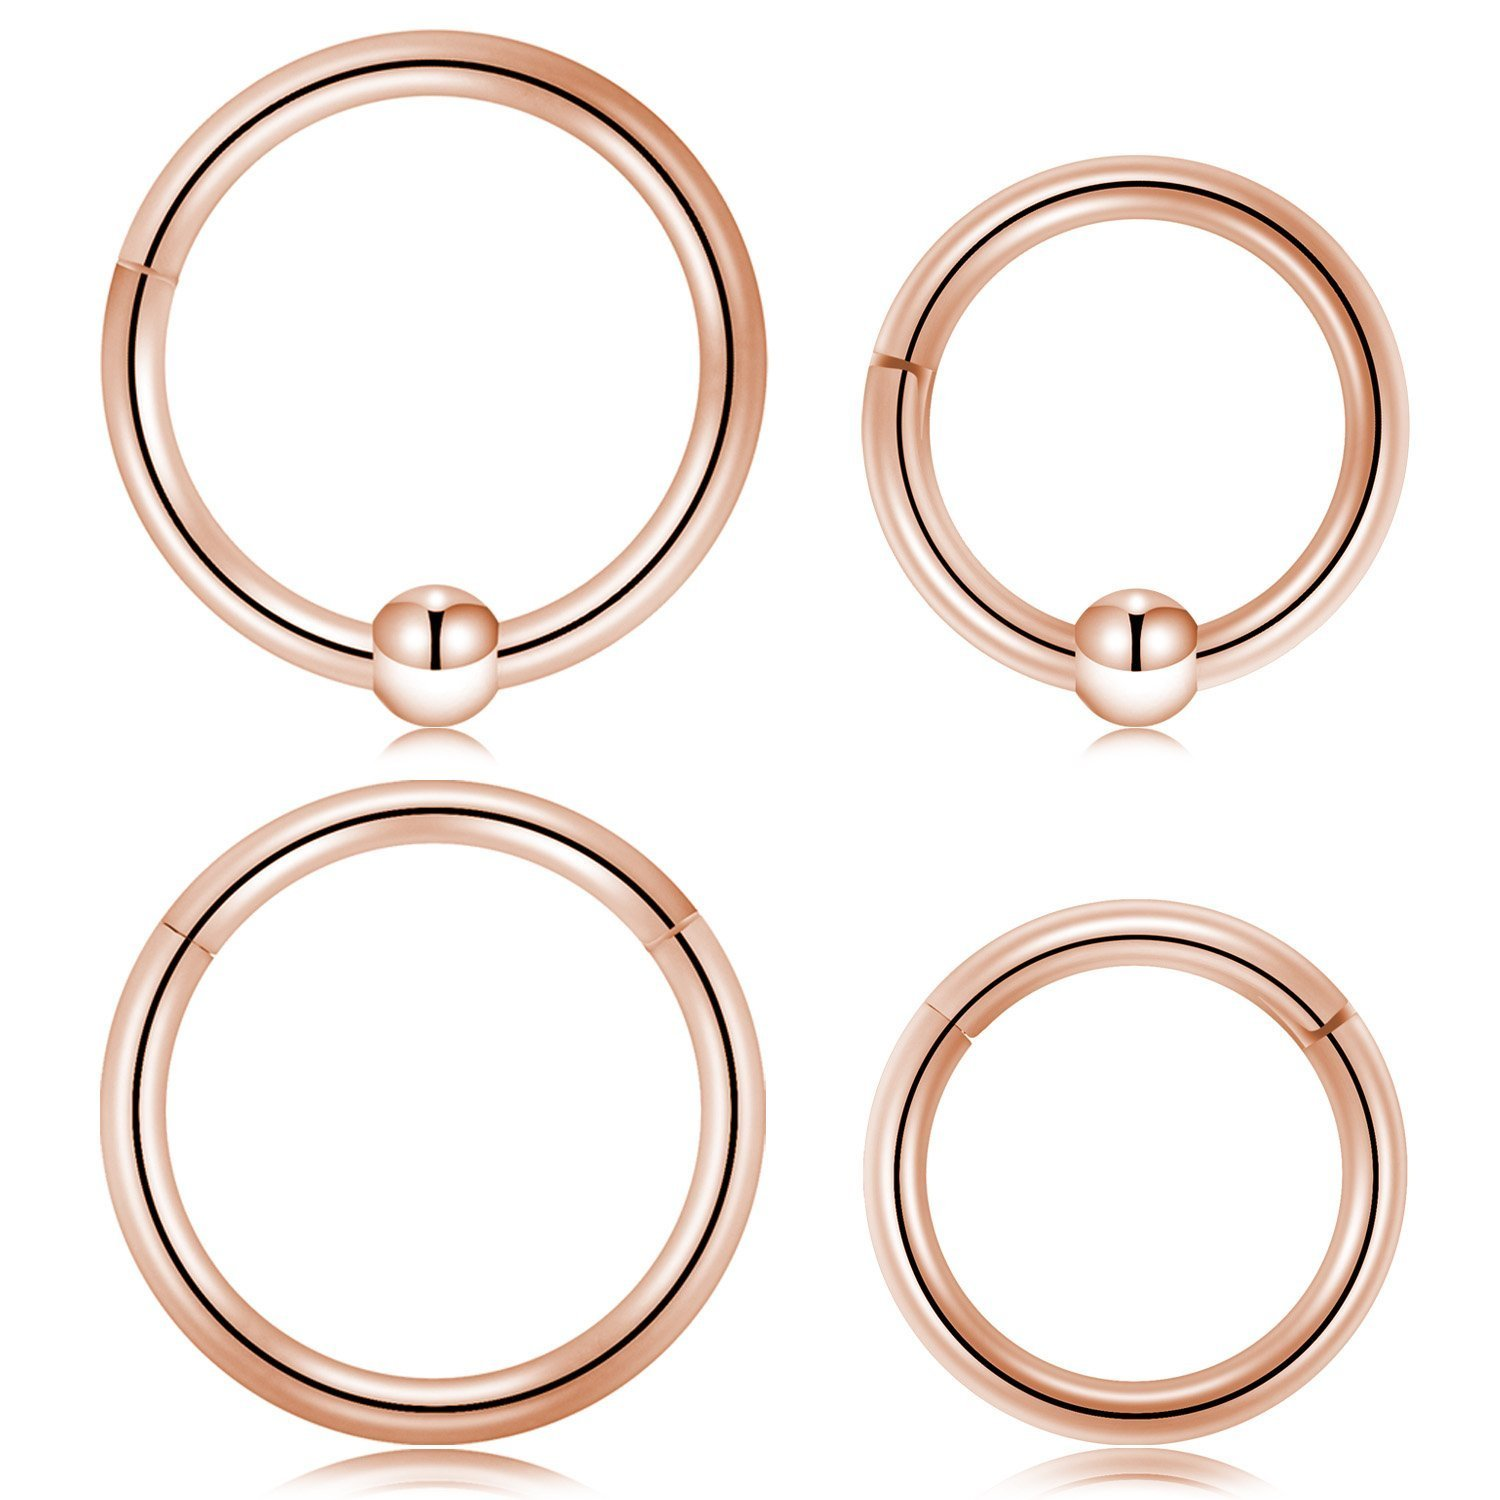 16G Stainless Steel Hinged Segment Seamless Clicker Ring Nose Ring Hoop Septum Piercing Kangyijia